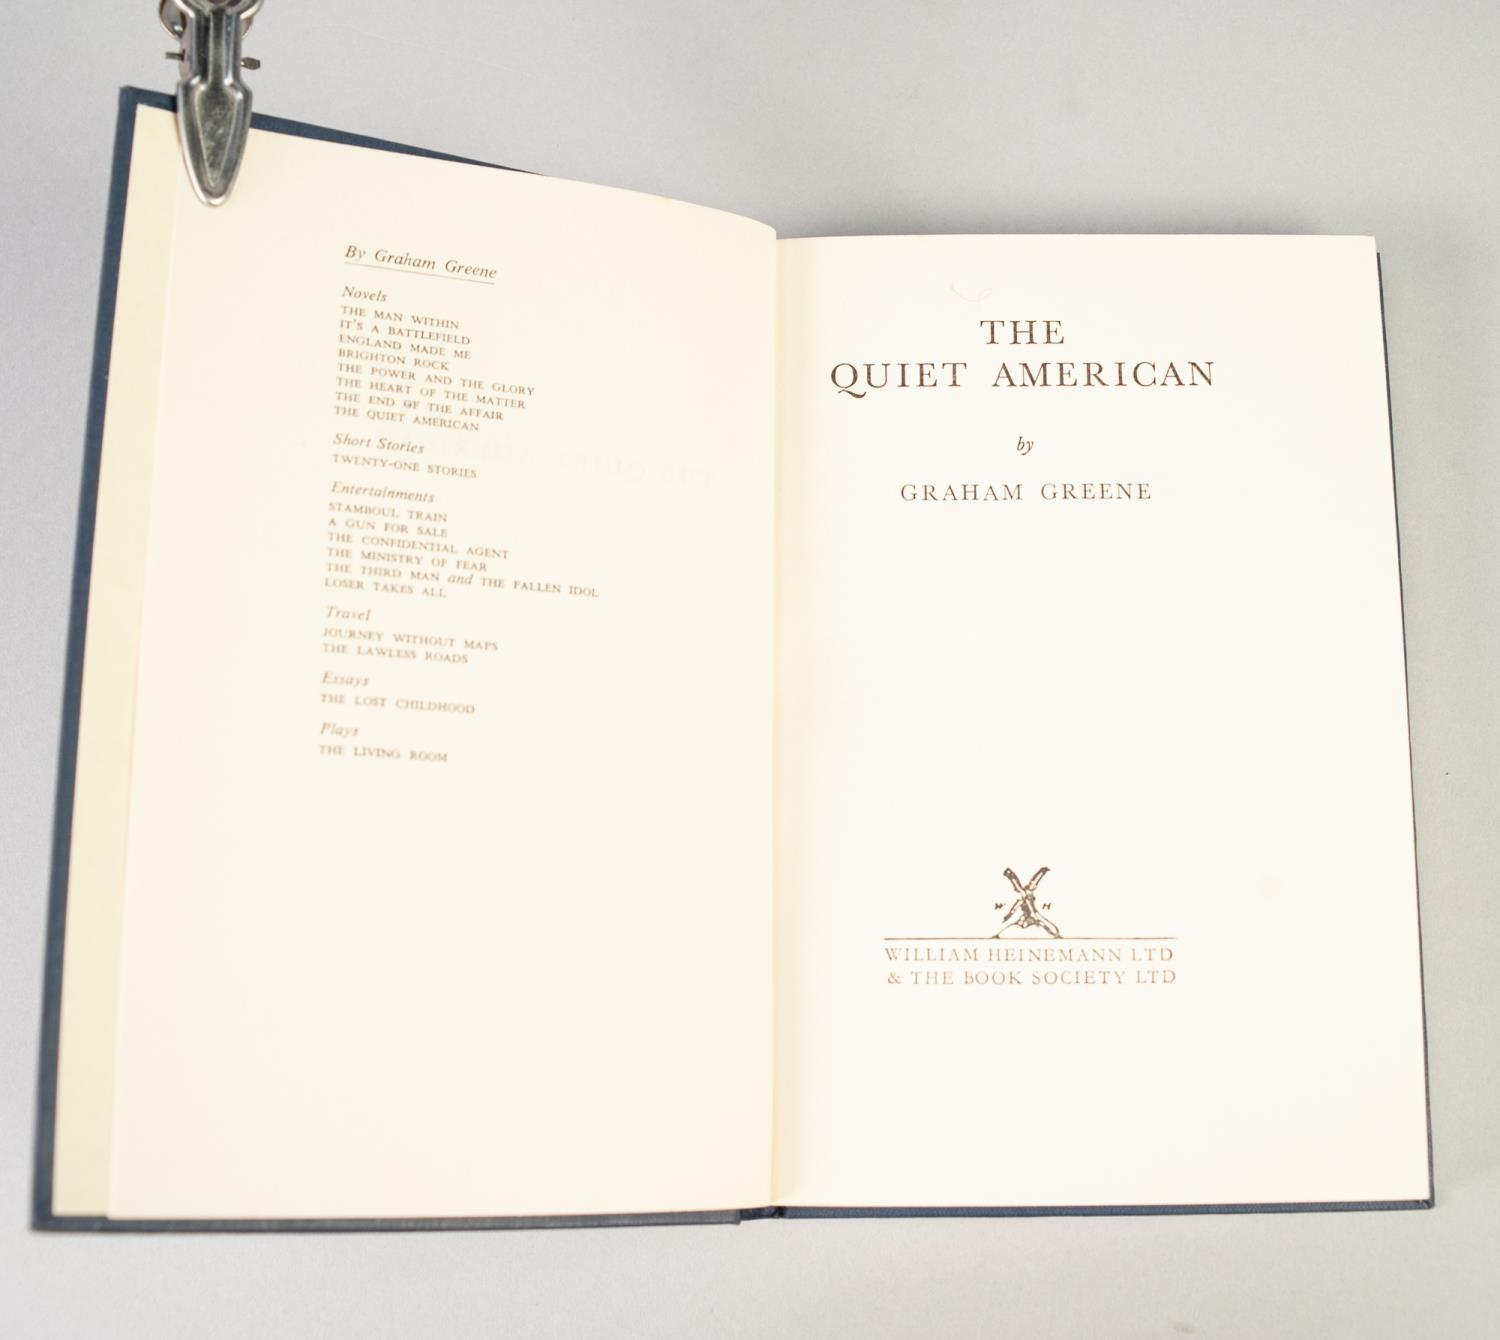 Lot 43 - GRAHAM GREENE, THE QUIET AMERICAN, issued on first publication by the Book Society Ltd. in